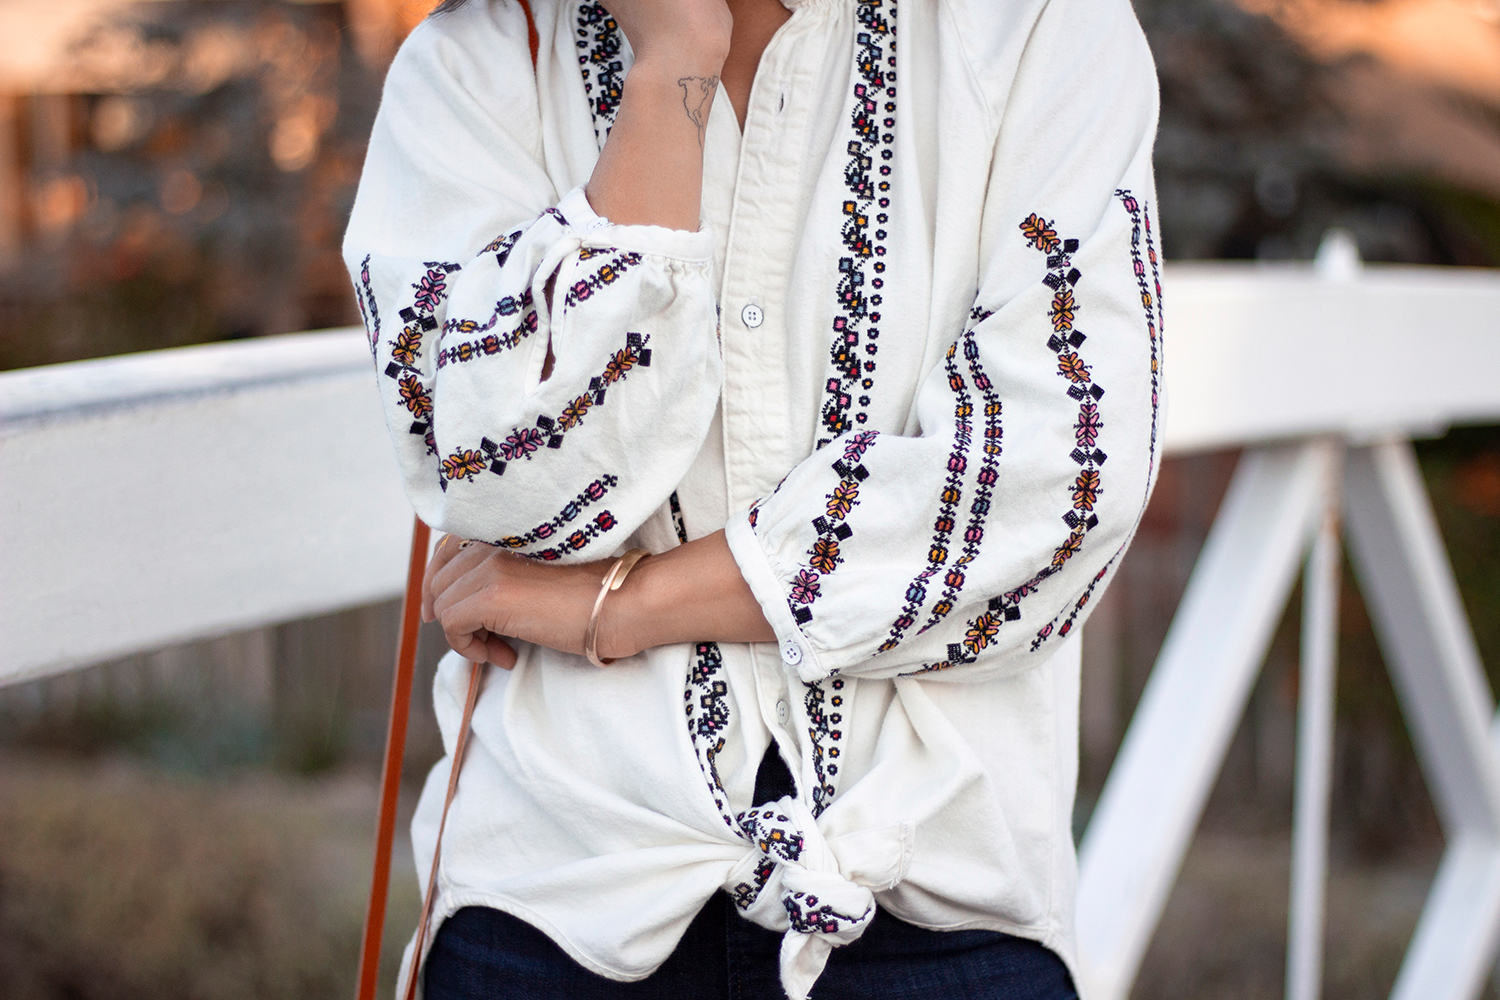 02luckybrand-embroidery-boho-venice-canals